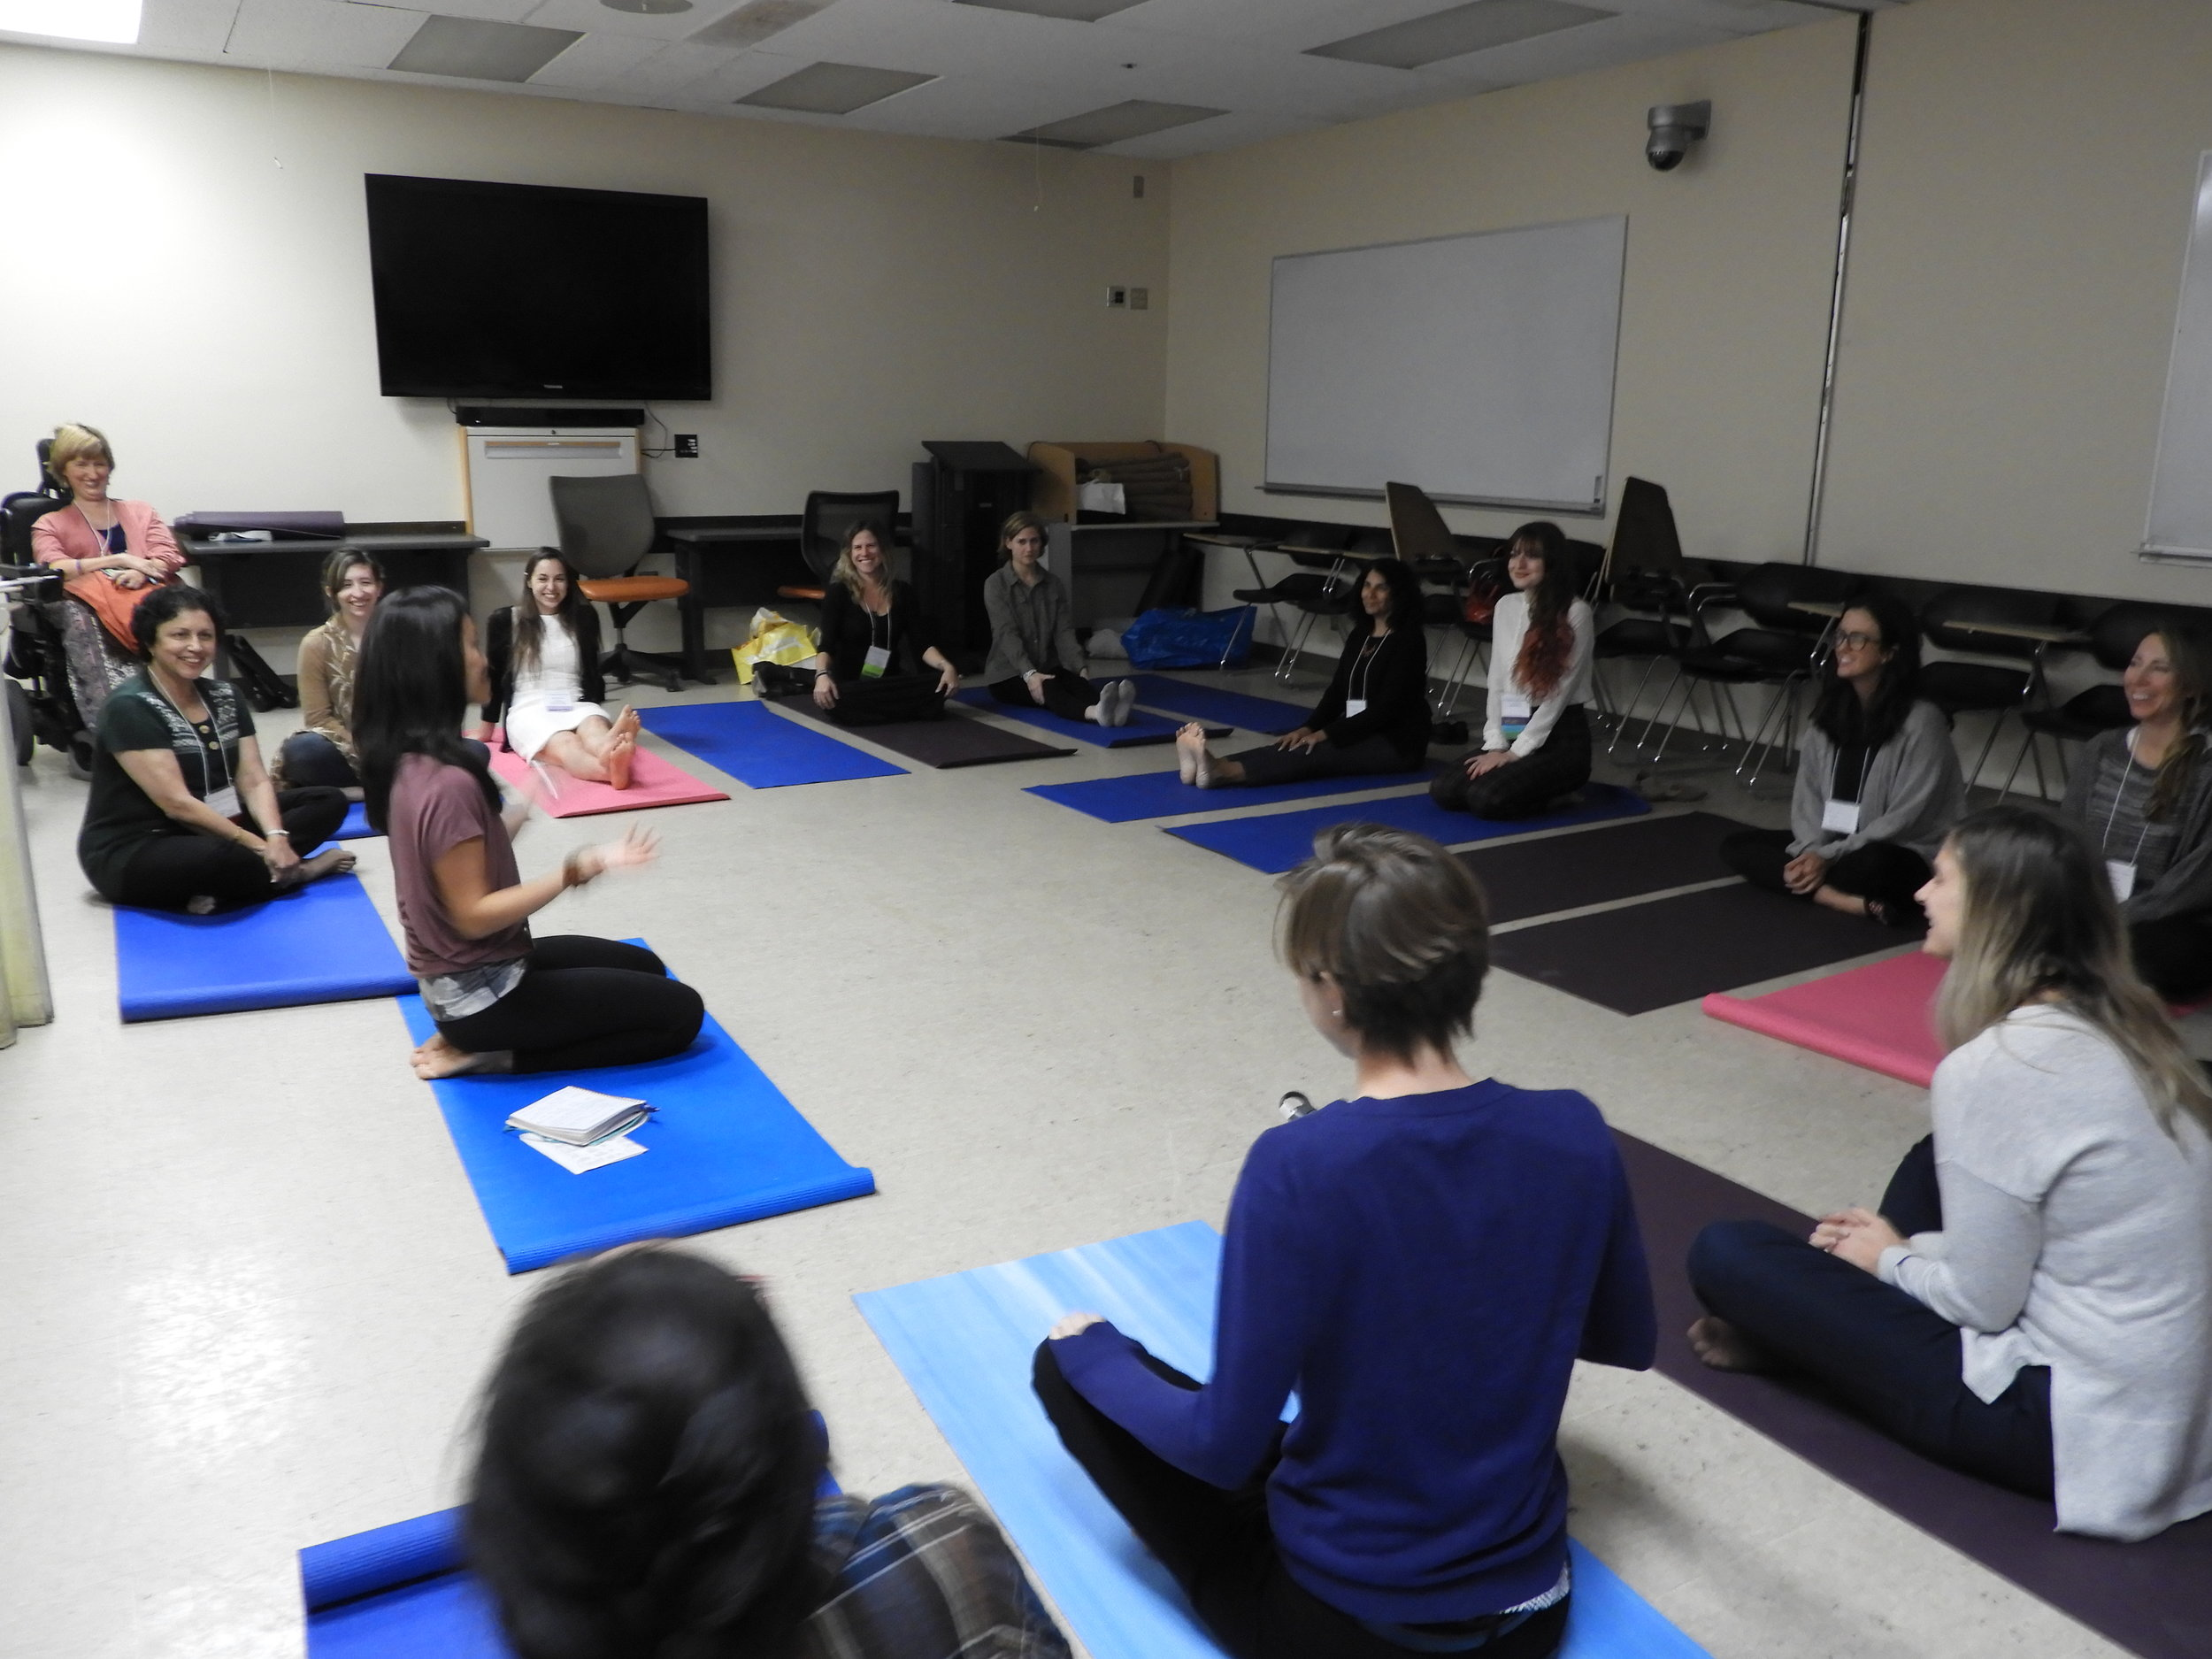 May Che leading a beautiful yoga therapy session